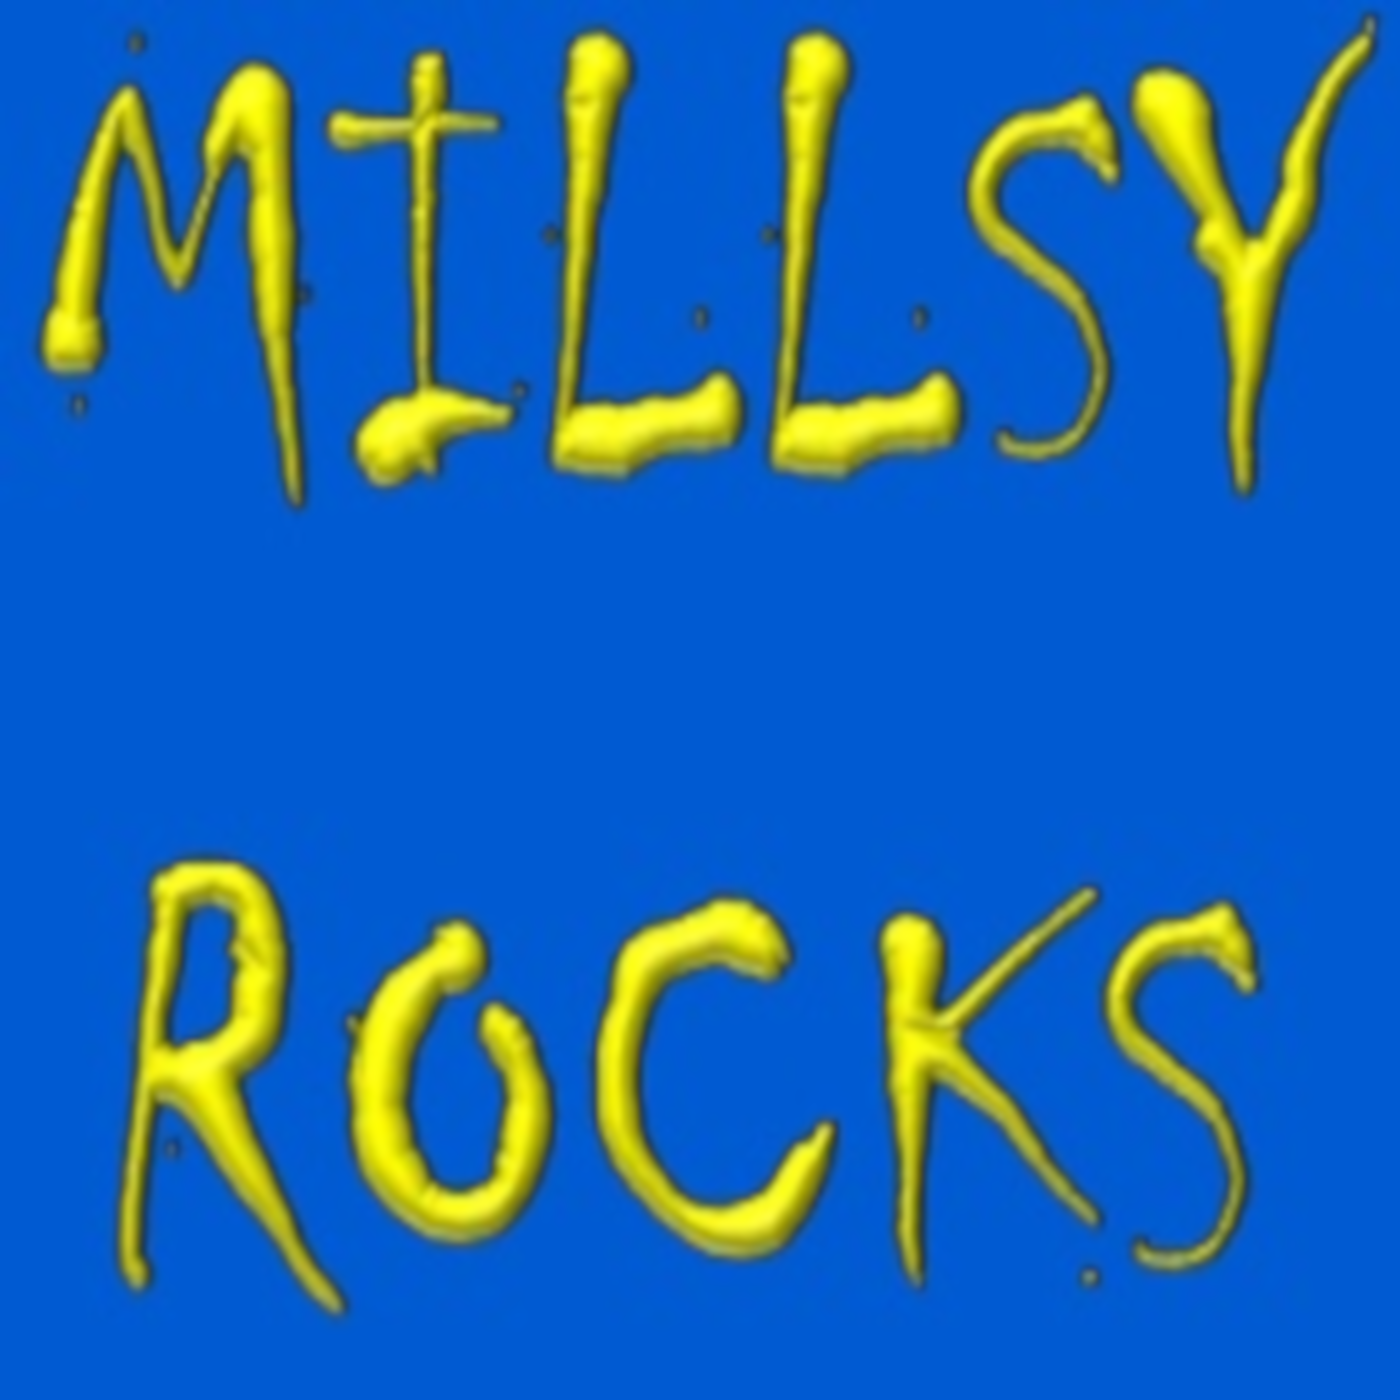 Millsy Rocks - Carl Mills Rock Metal Show-17-08-2018 pt-2 AIRshare